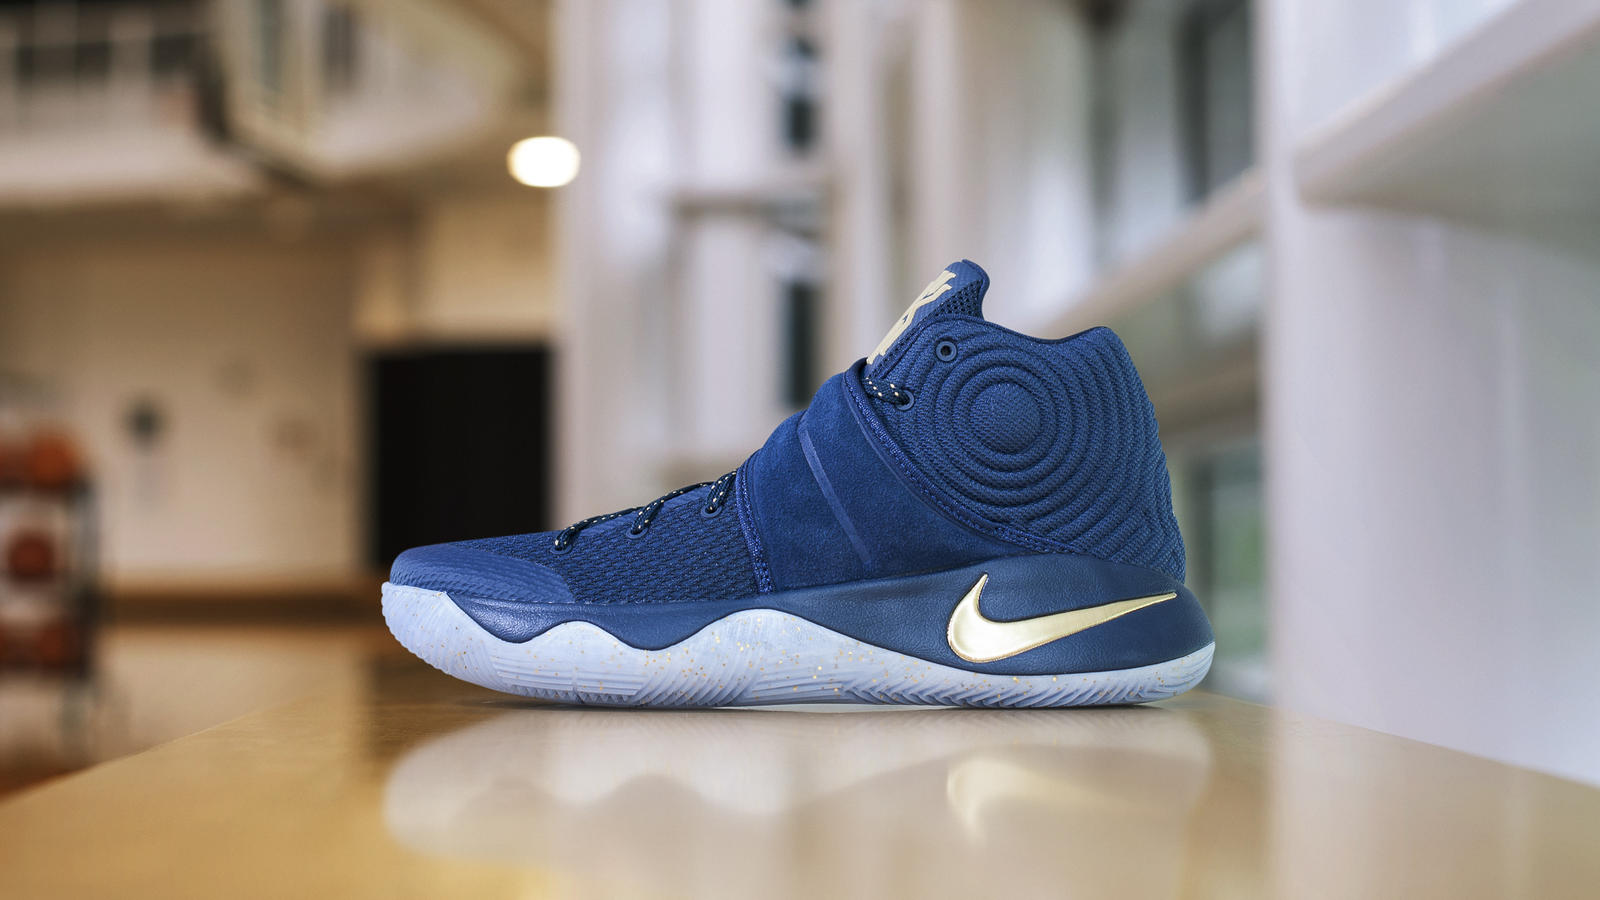 Kyrie navy dsc 4256 hd 1600